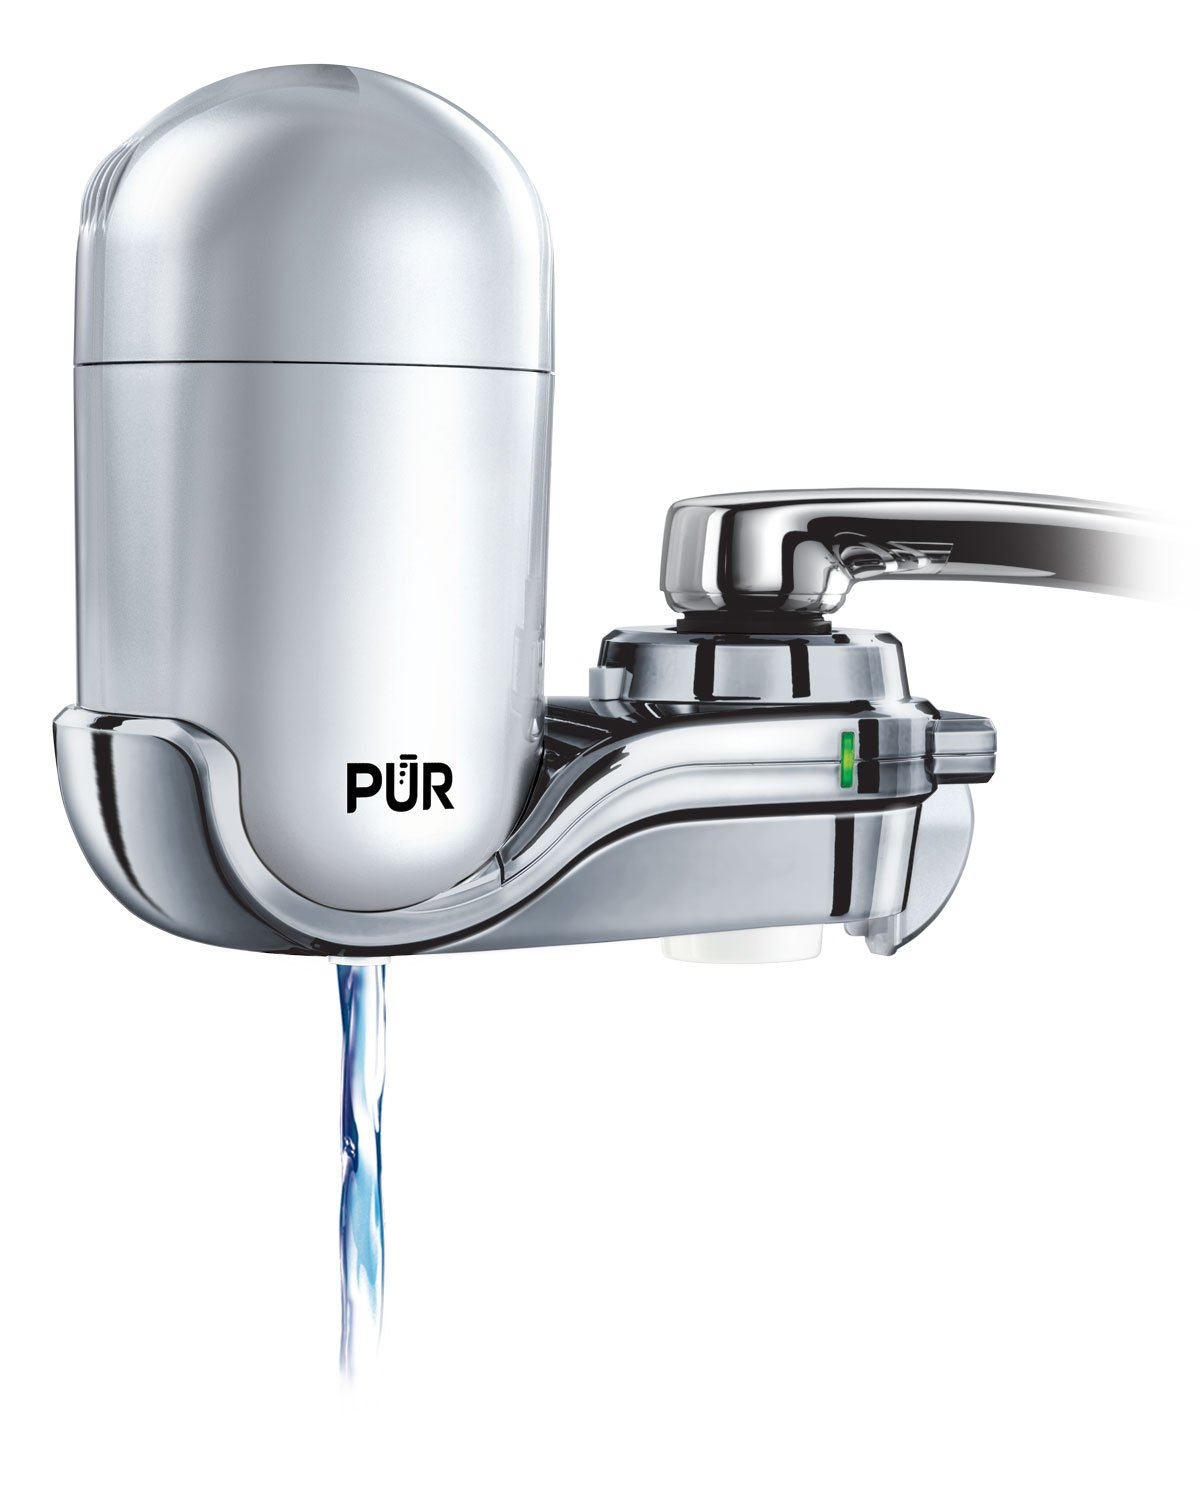 PUR FM-4100B 3-Stage Vertical Faucet Water Filter System, Gray  by PUR